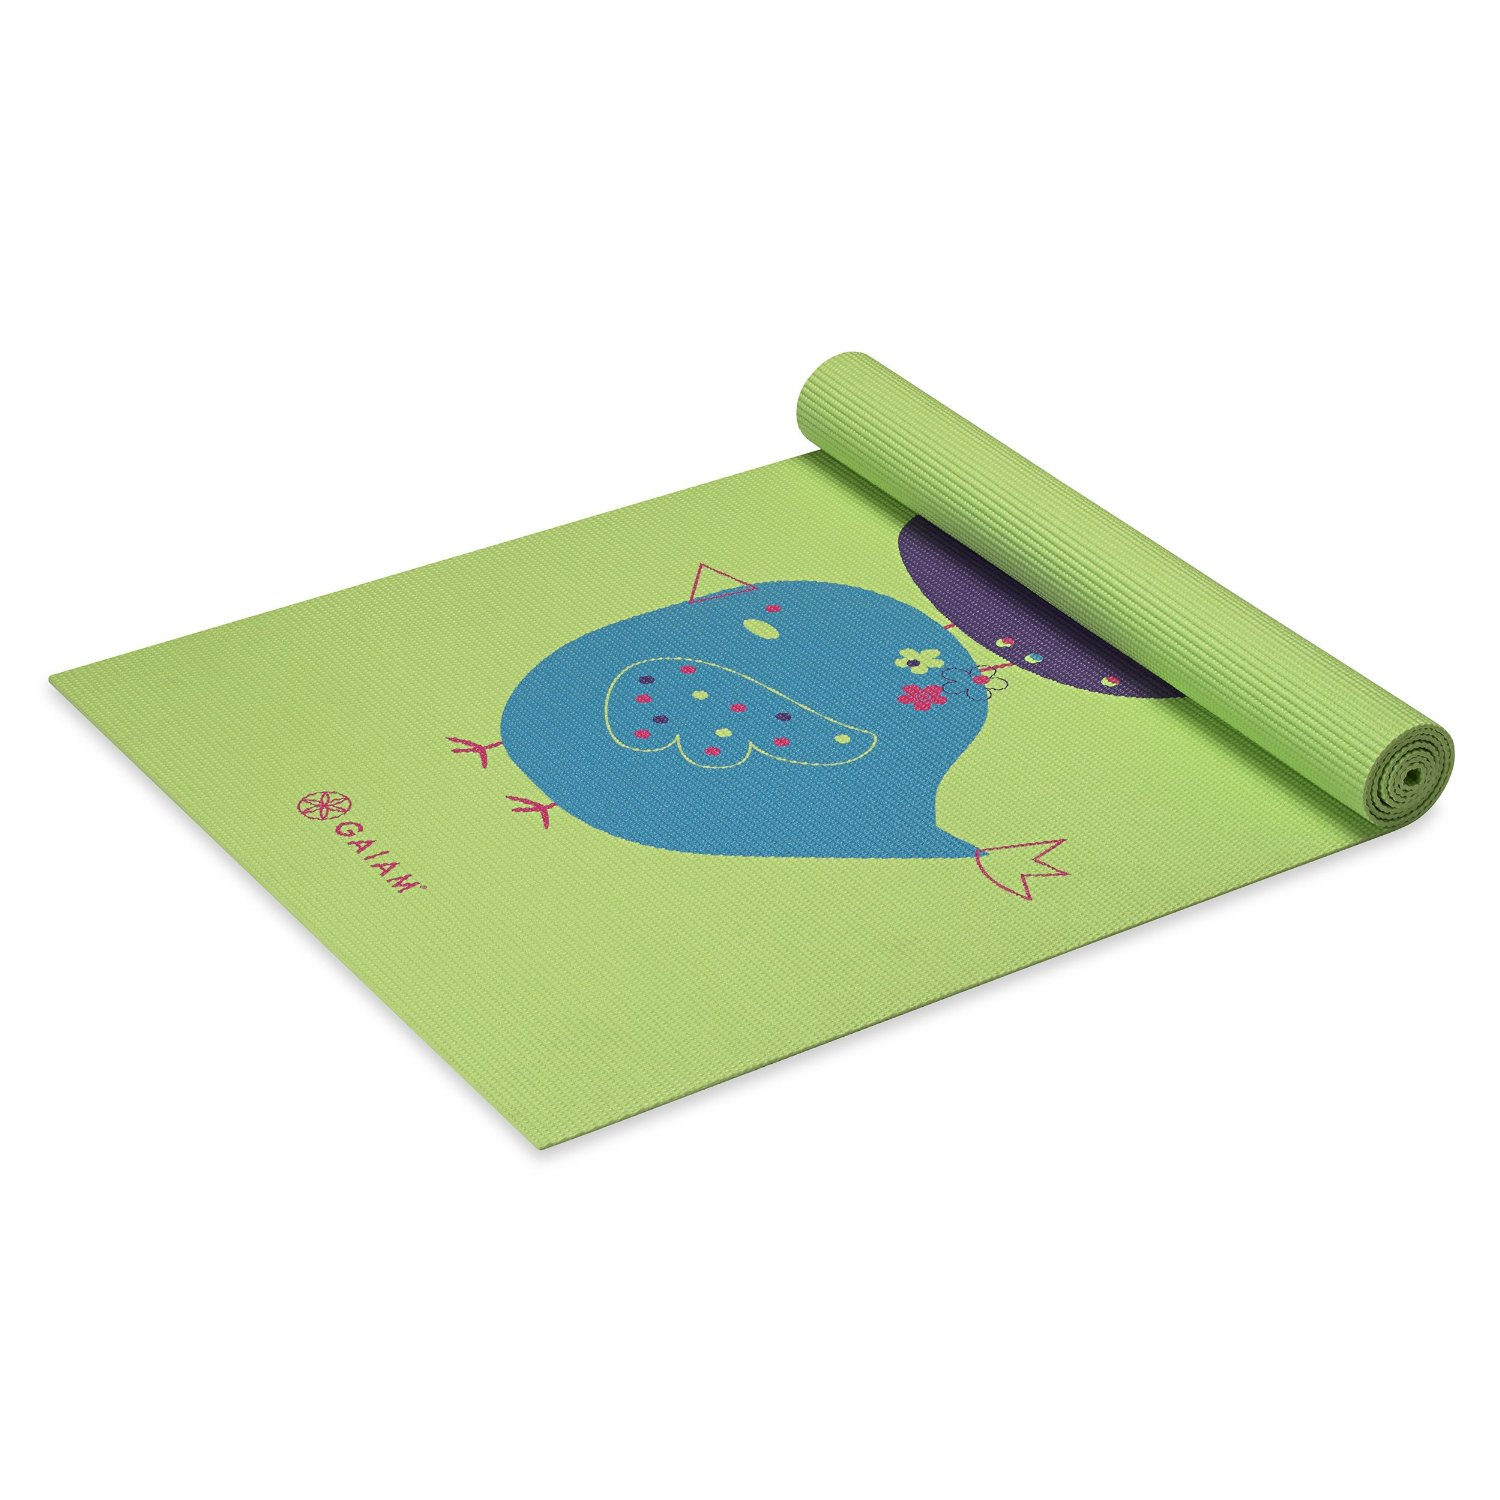 gaiam kids yoga mat birdsong